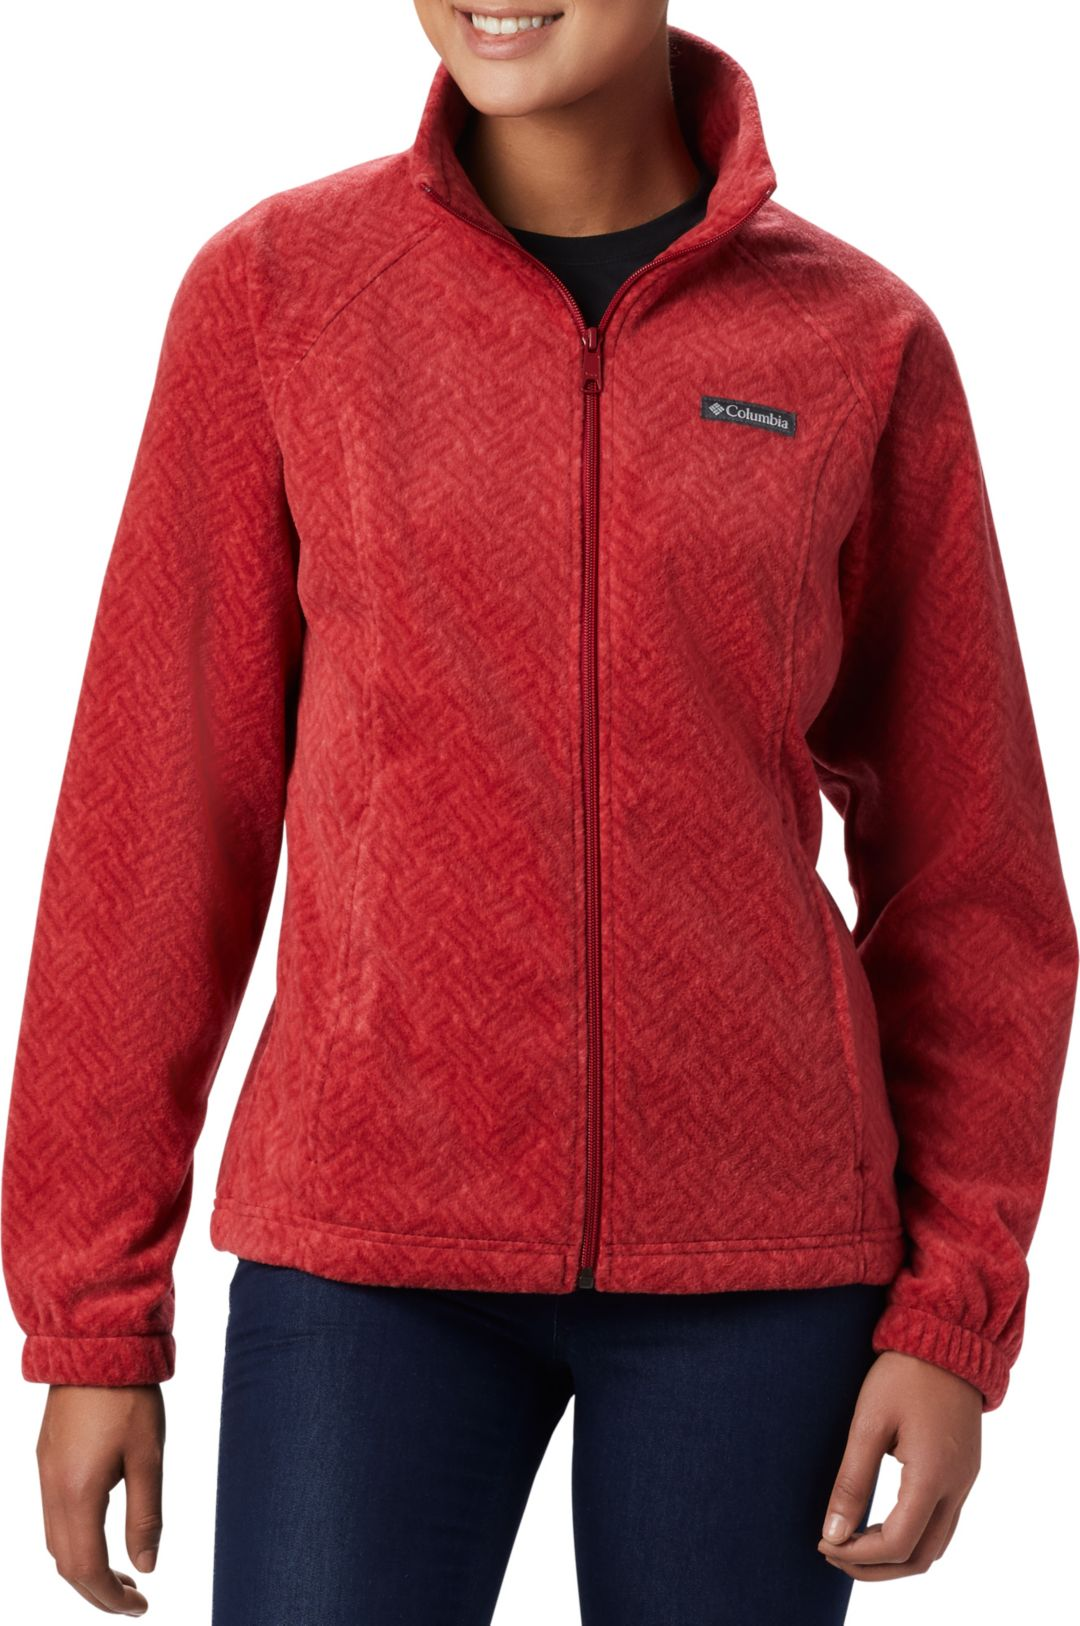 428927246 Columbia Women's Benton Springs Print Full Zip Fleece Jacket